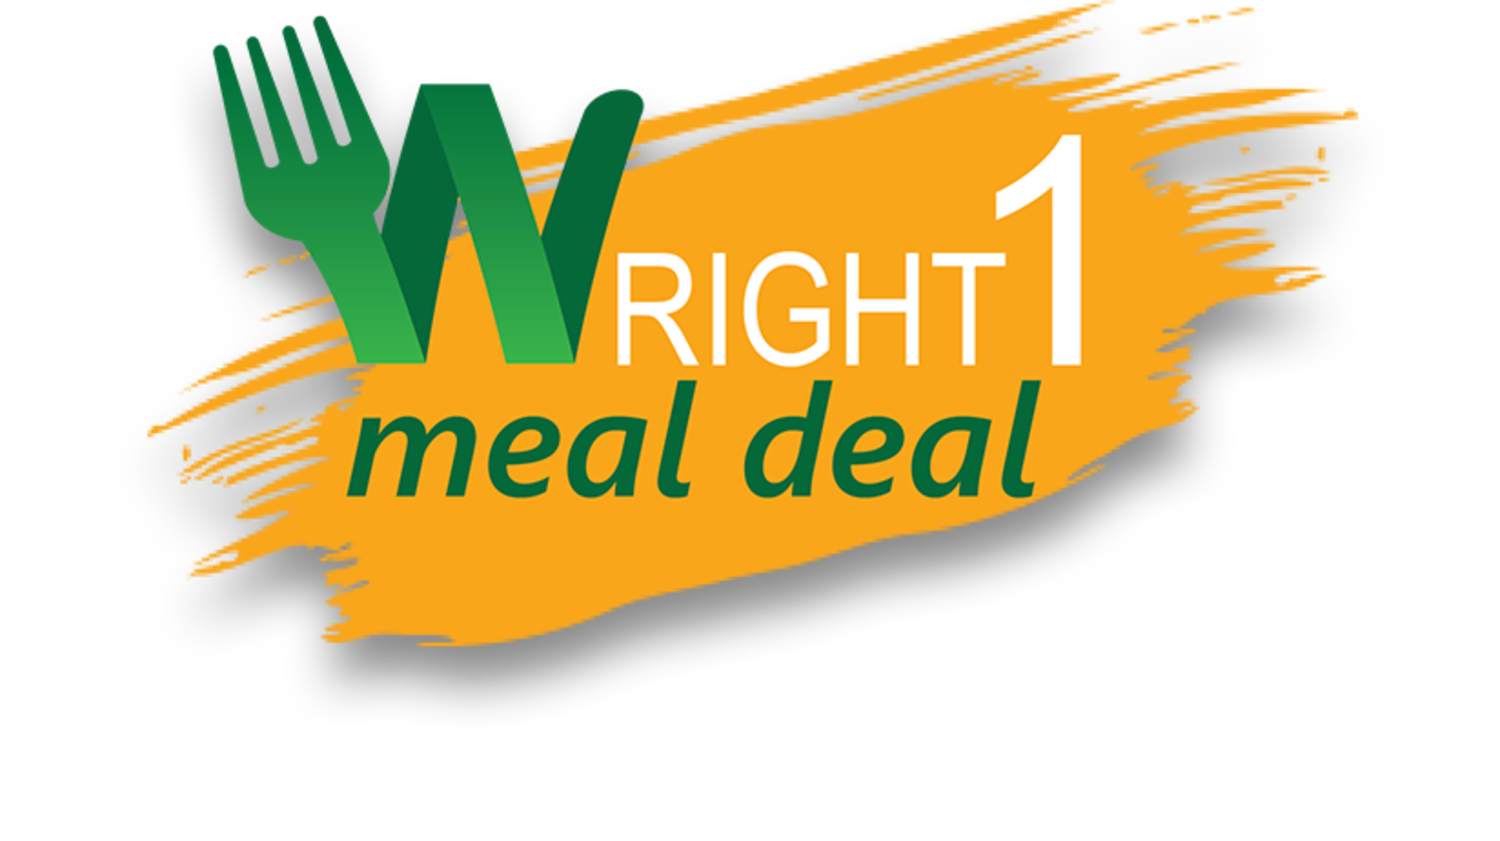 Meal Deal graphic